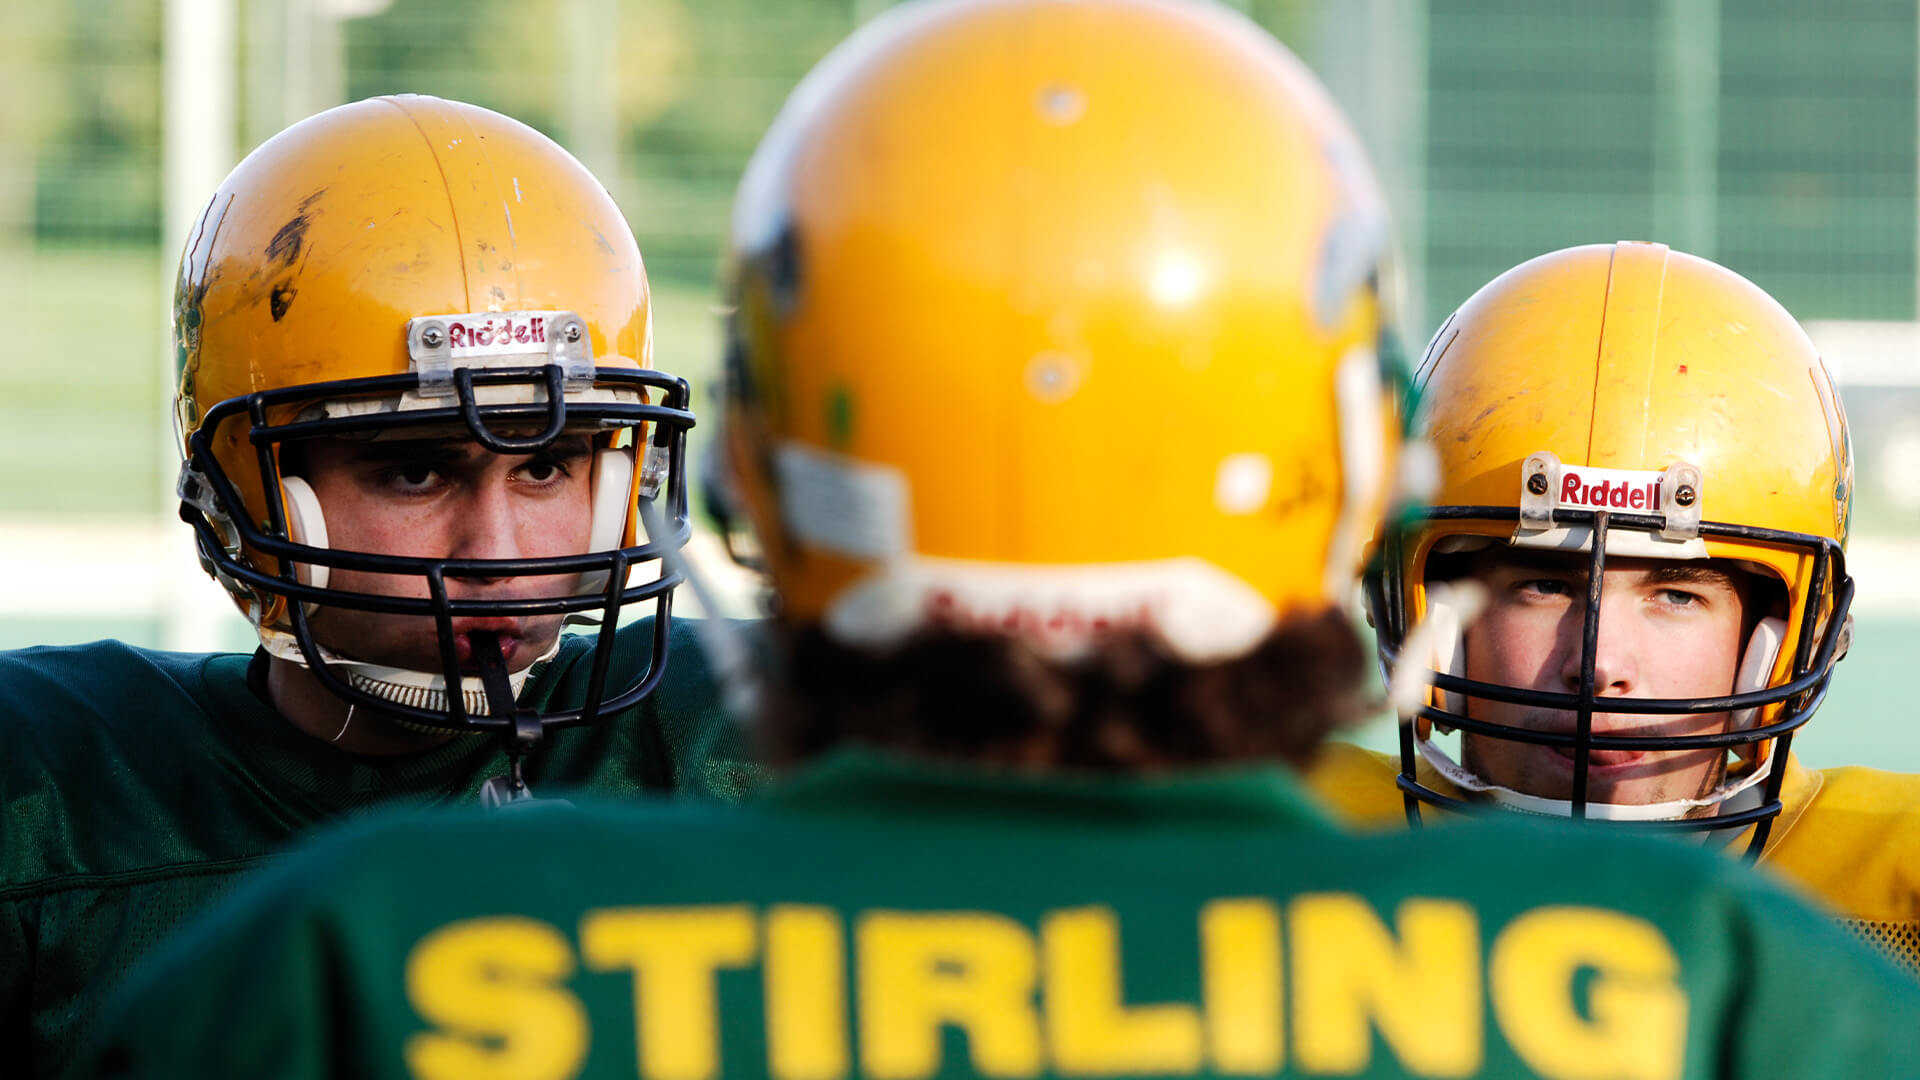 The Stirling Clansme, the American football team for the University of Stirling